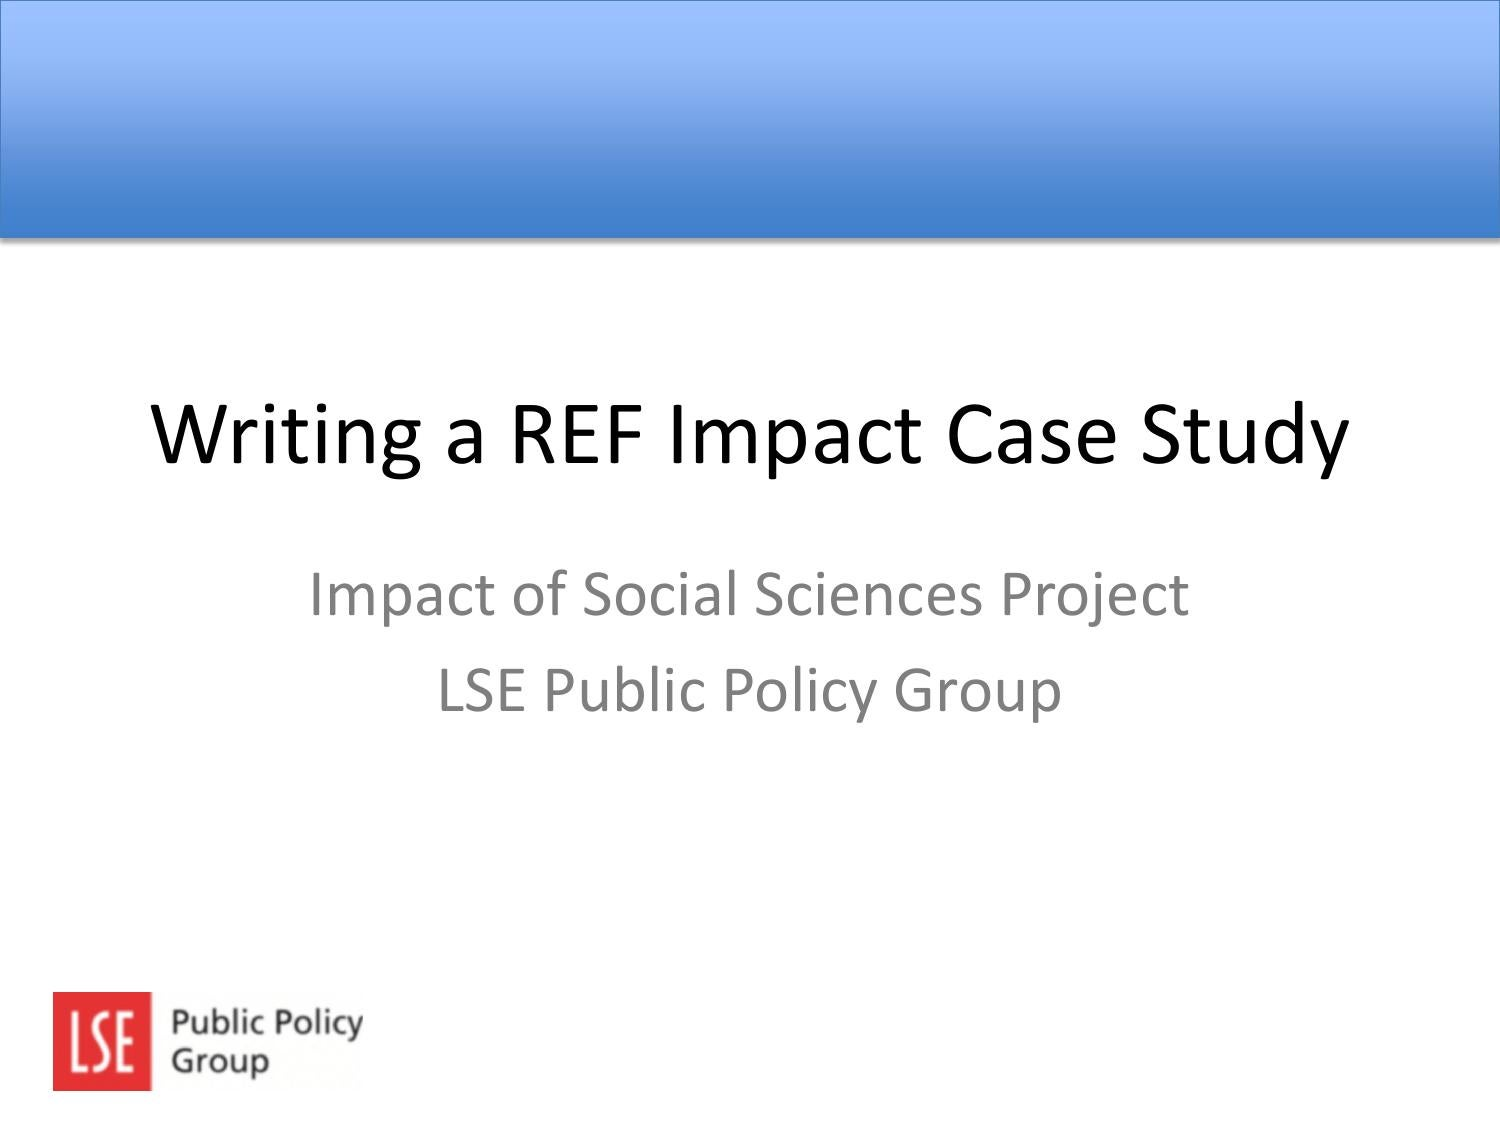 Digital Research Report Visualises the Ref Data to Show That     Twitter Mining the REF impact case studies for lessons on leadership  governance  and management in Higher Education